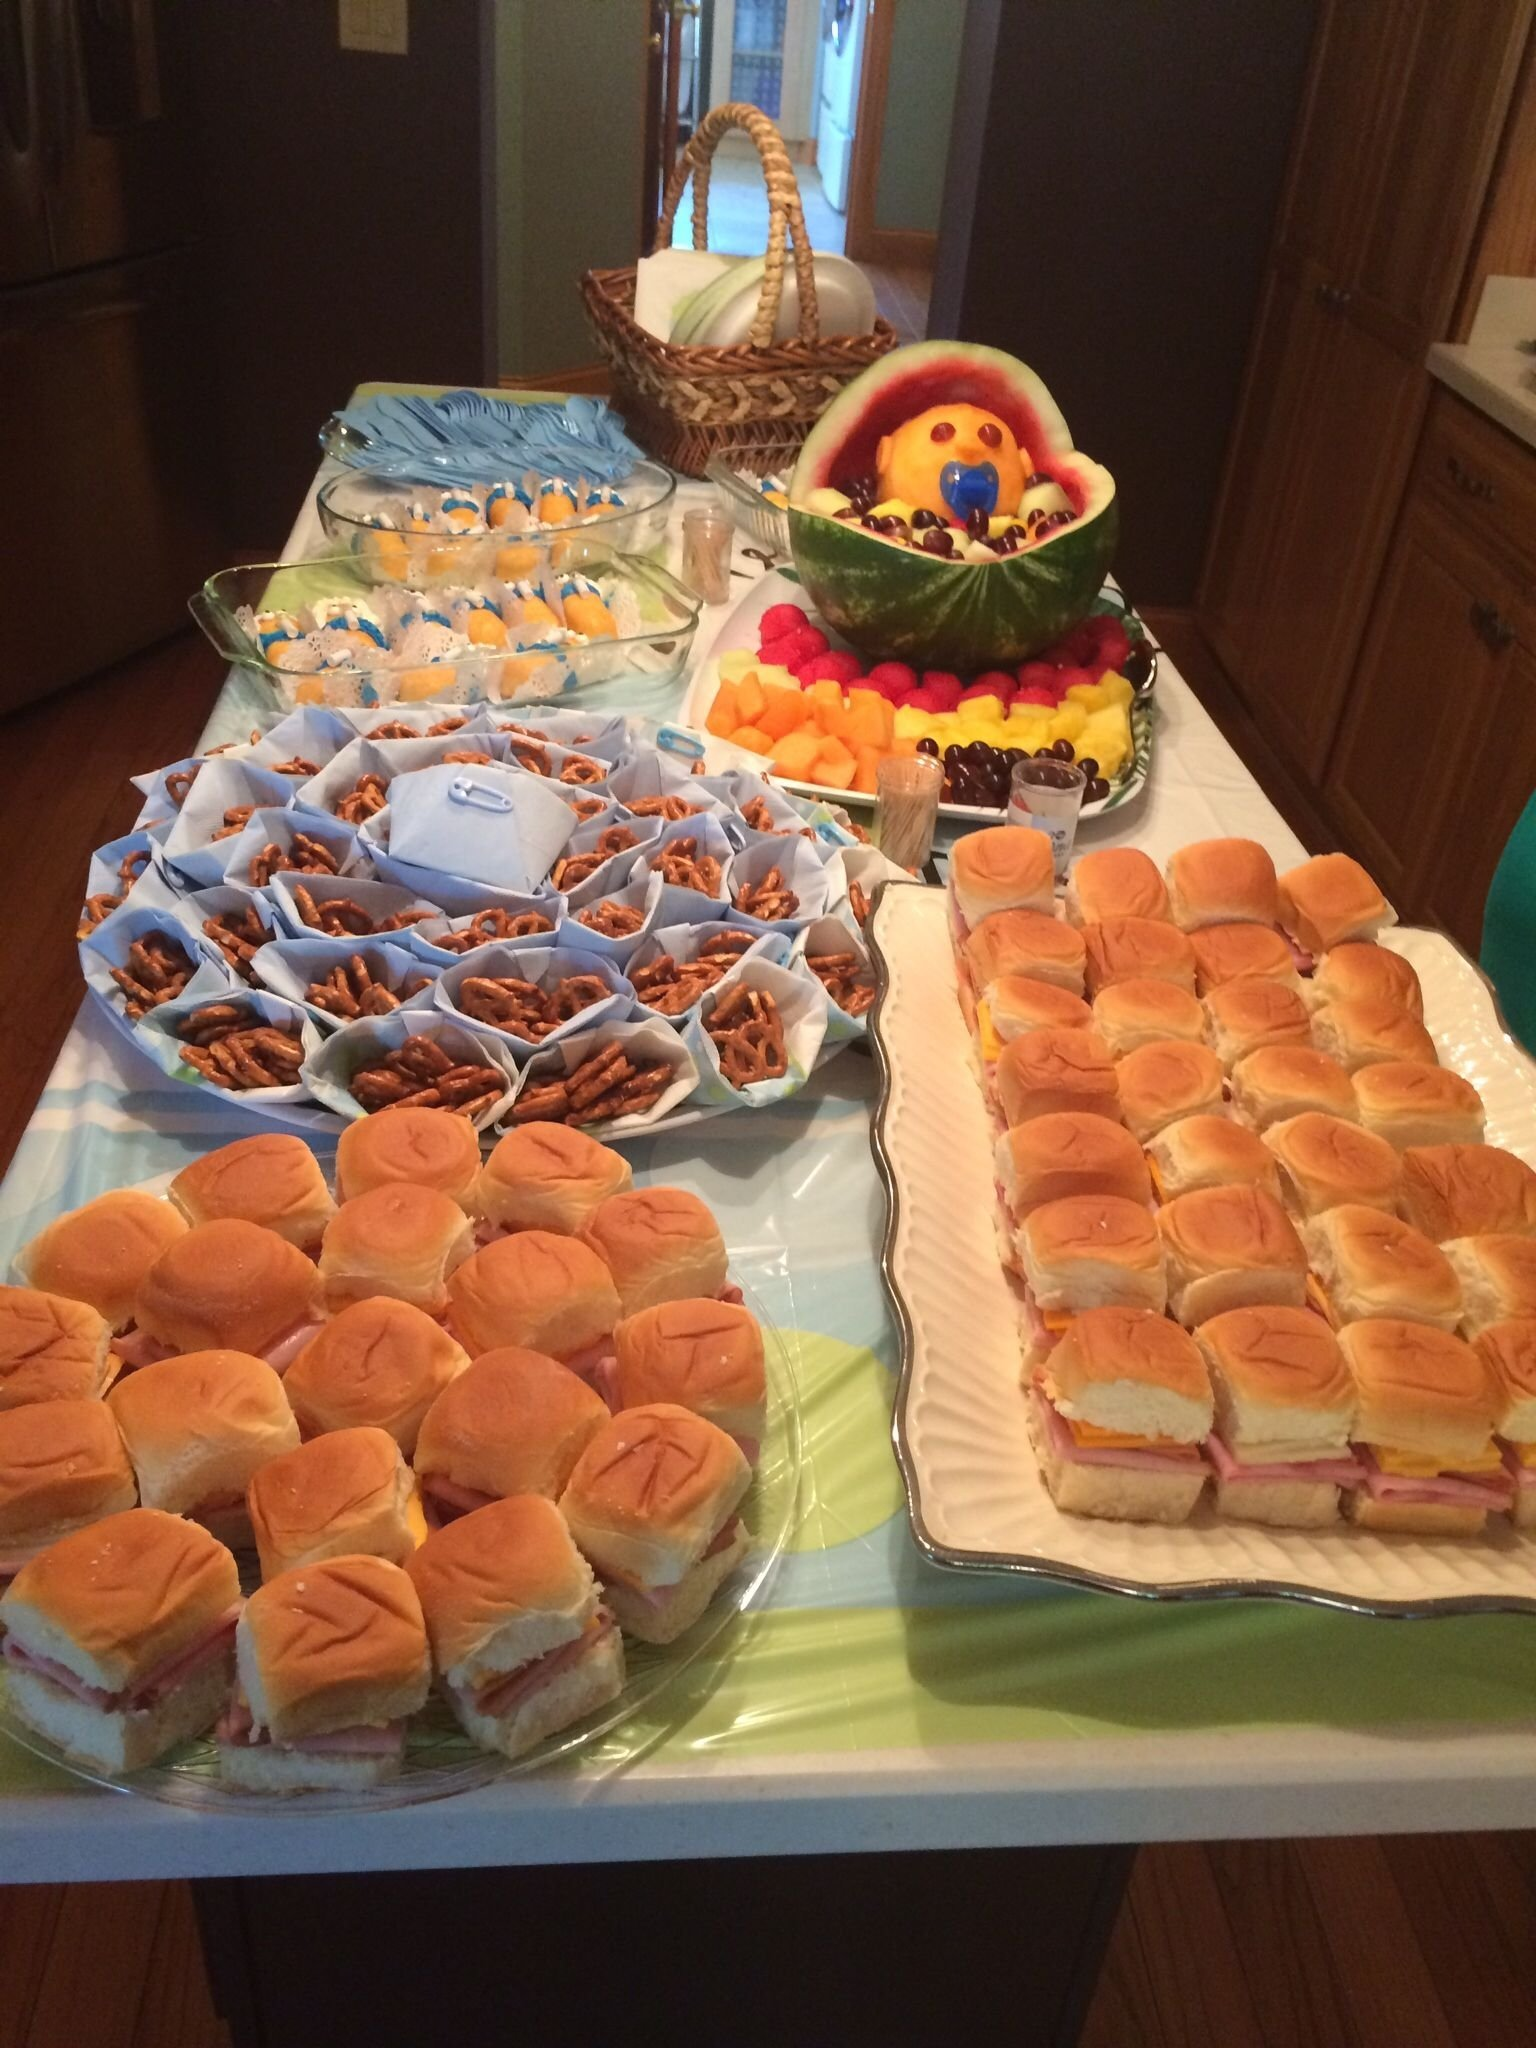 10 Fashionable Ideas For Baby Shower Food baby shower food on a budget sandwiches on hawaiian rolls pretzel 1 2021